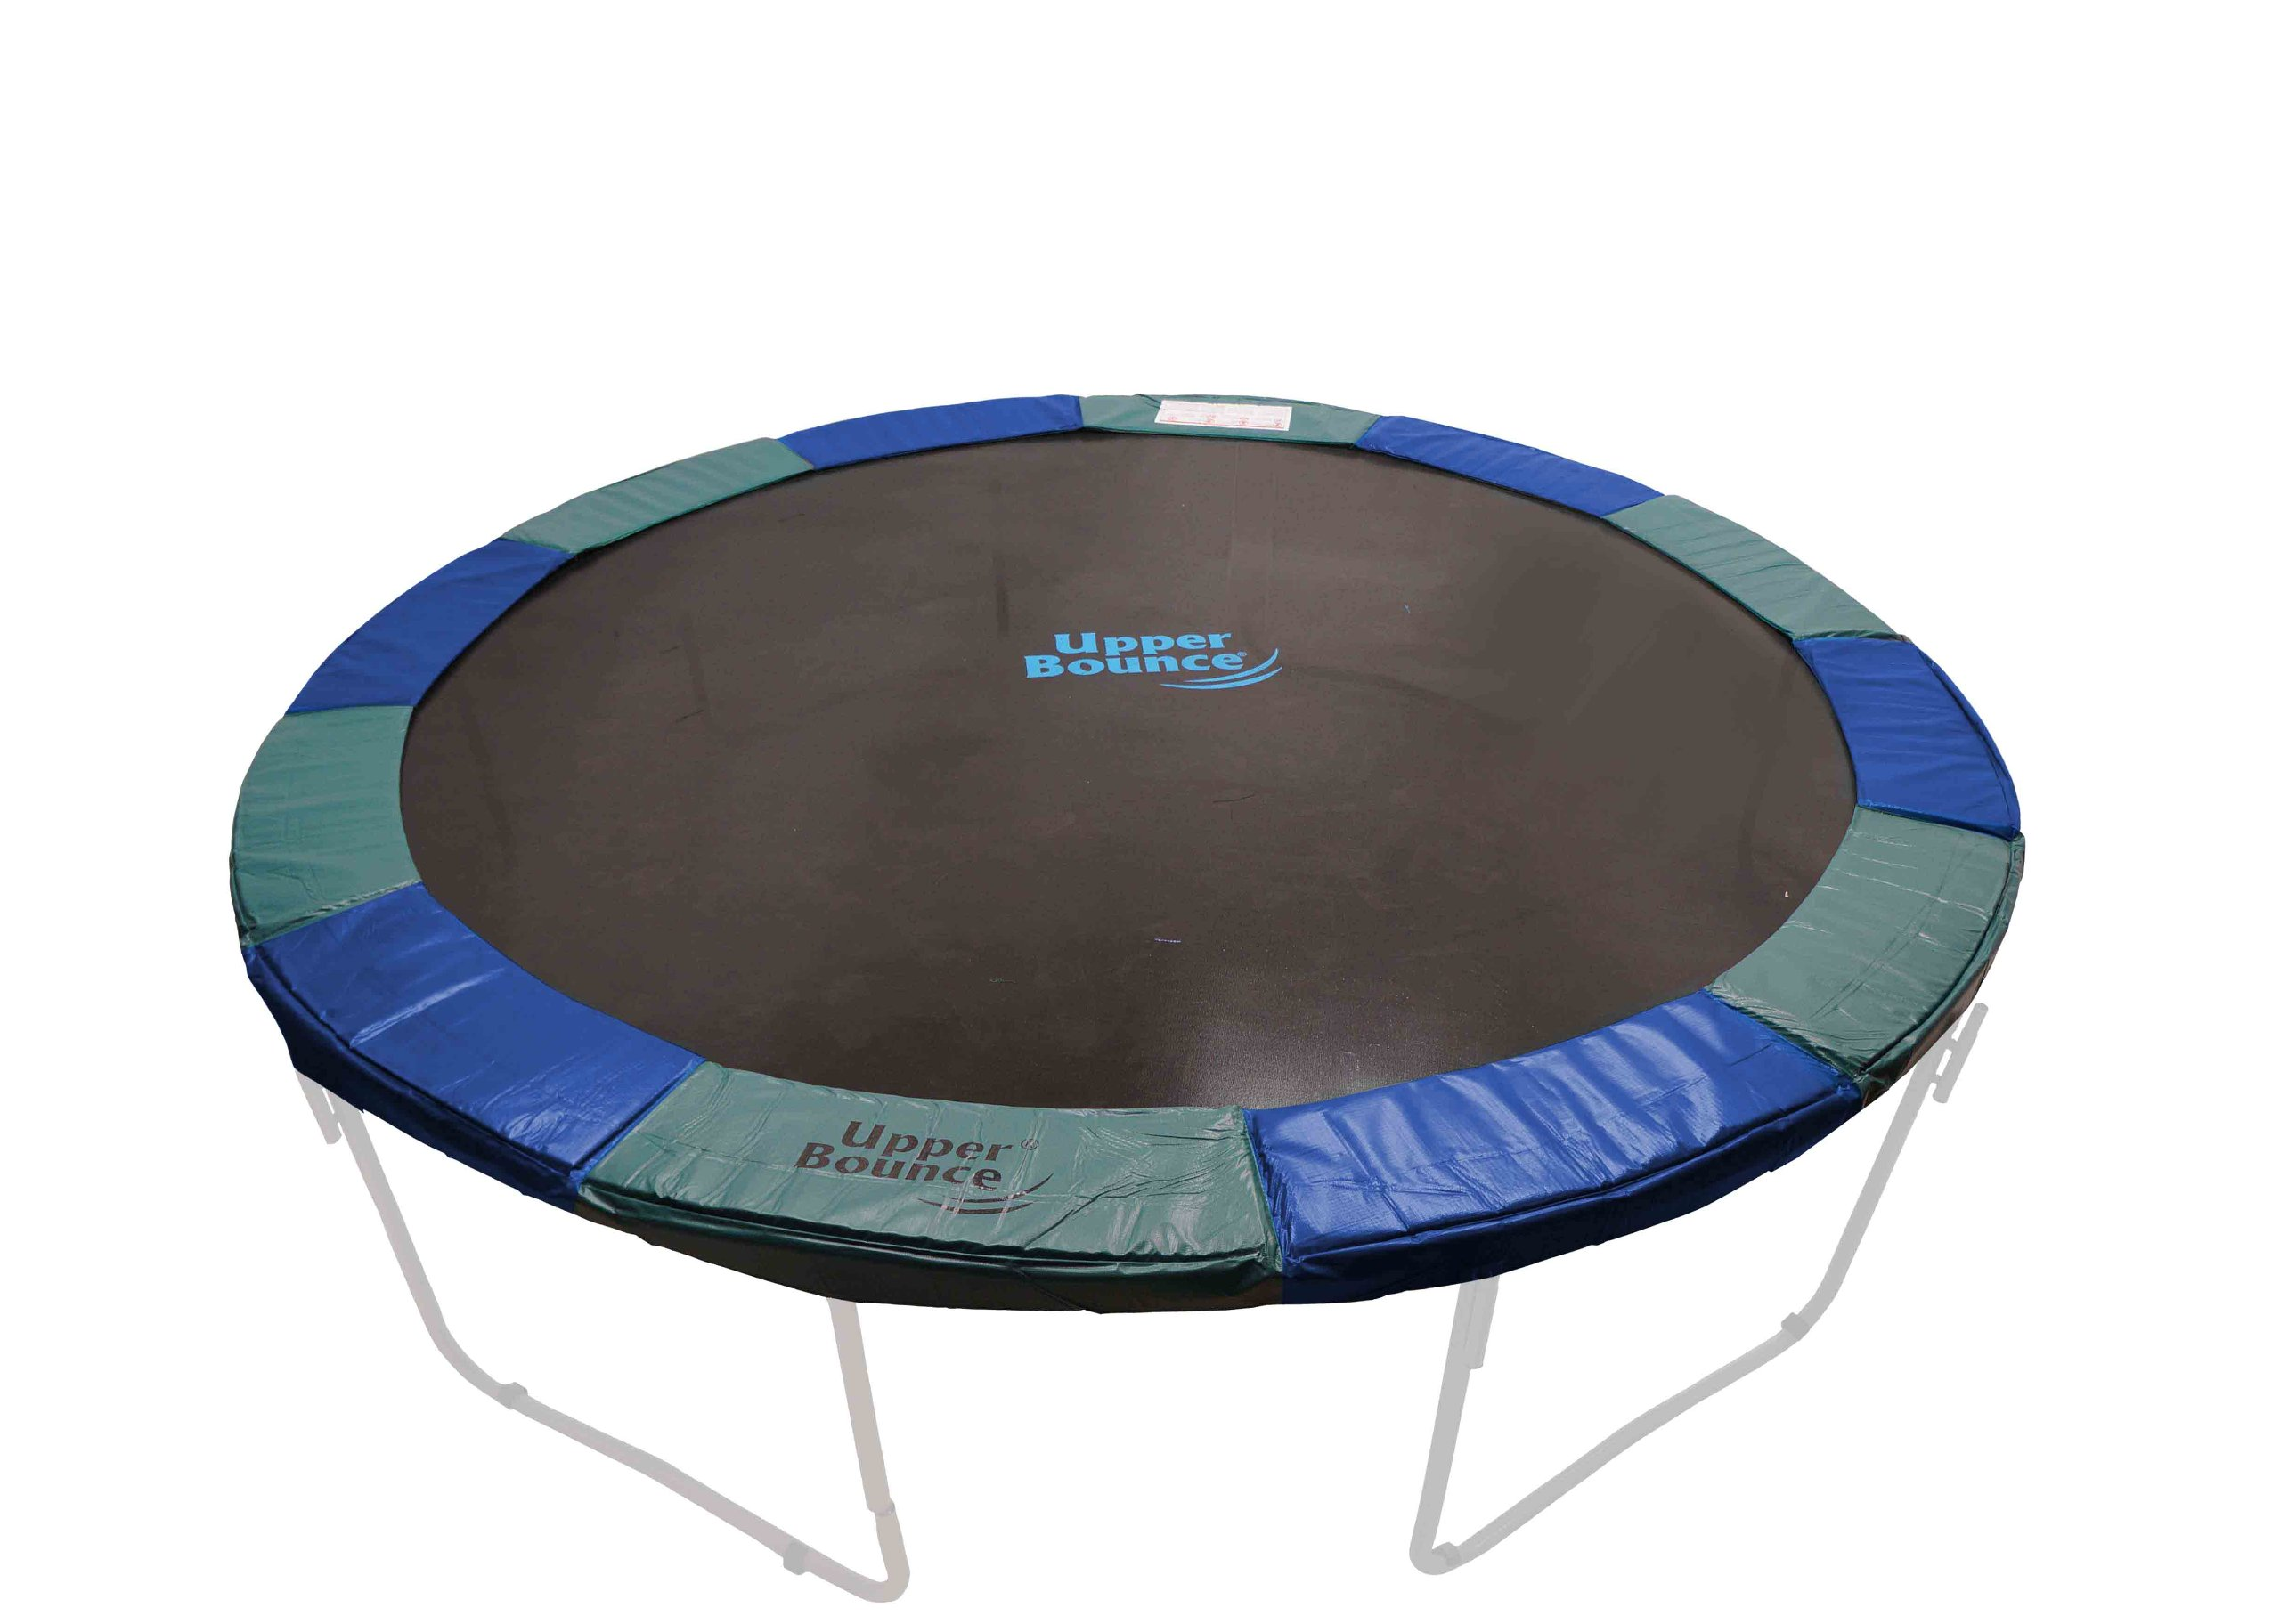 Upper Bounce Trampoline Safety Pad, 14-Feet x 10-Inch, Blue/Green by Upper Bounce